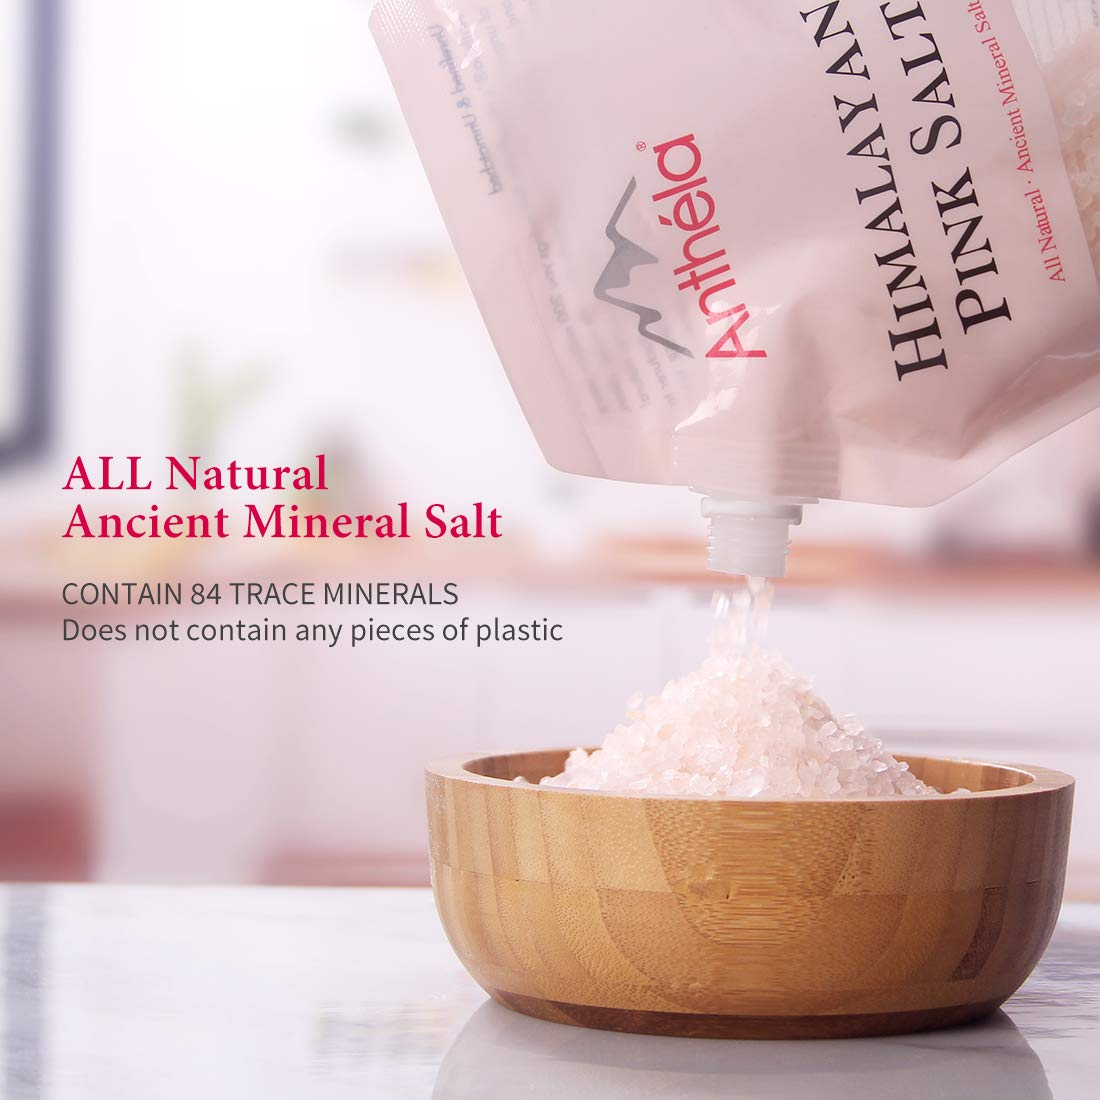 Anthéla Himalayan Pink Salt, Premium Organic Gourmet 100% Pure Ancient Mineral Sea Salt